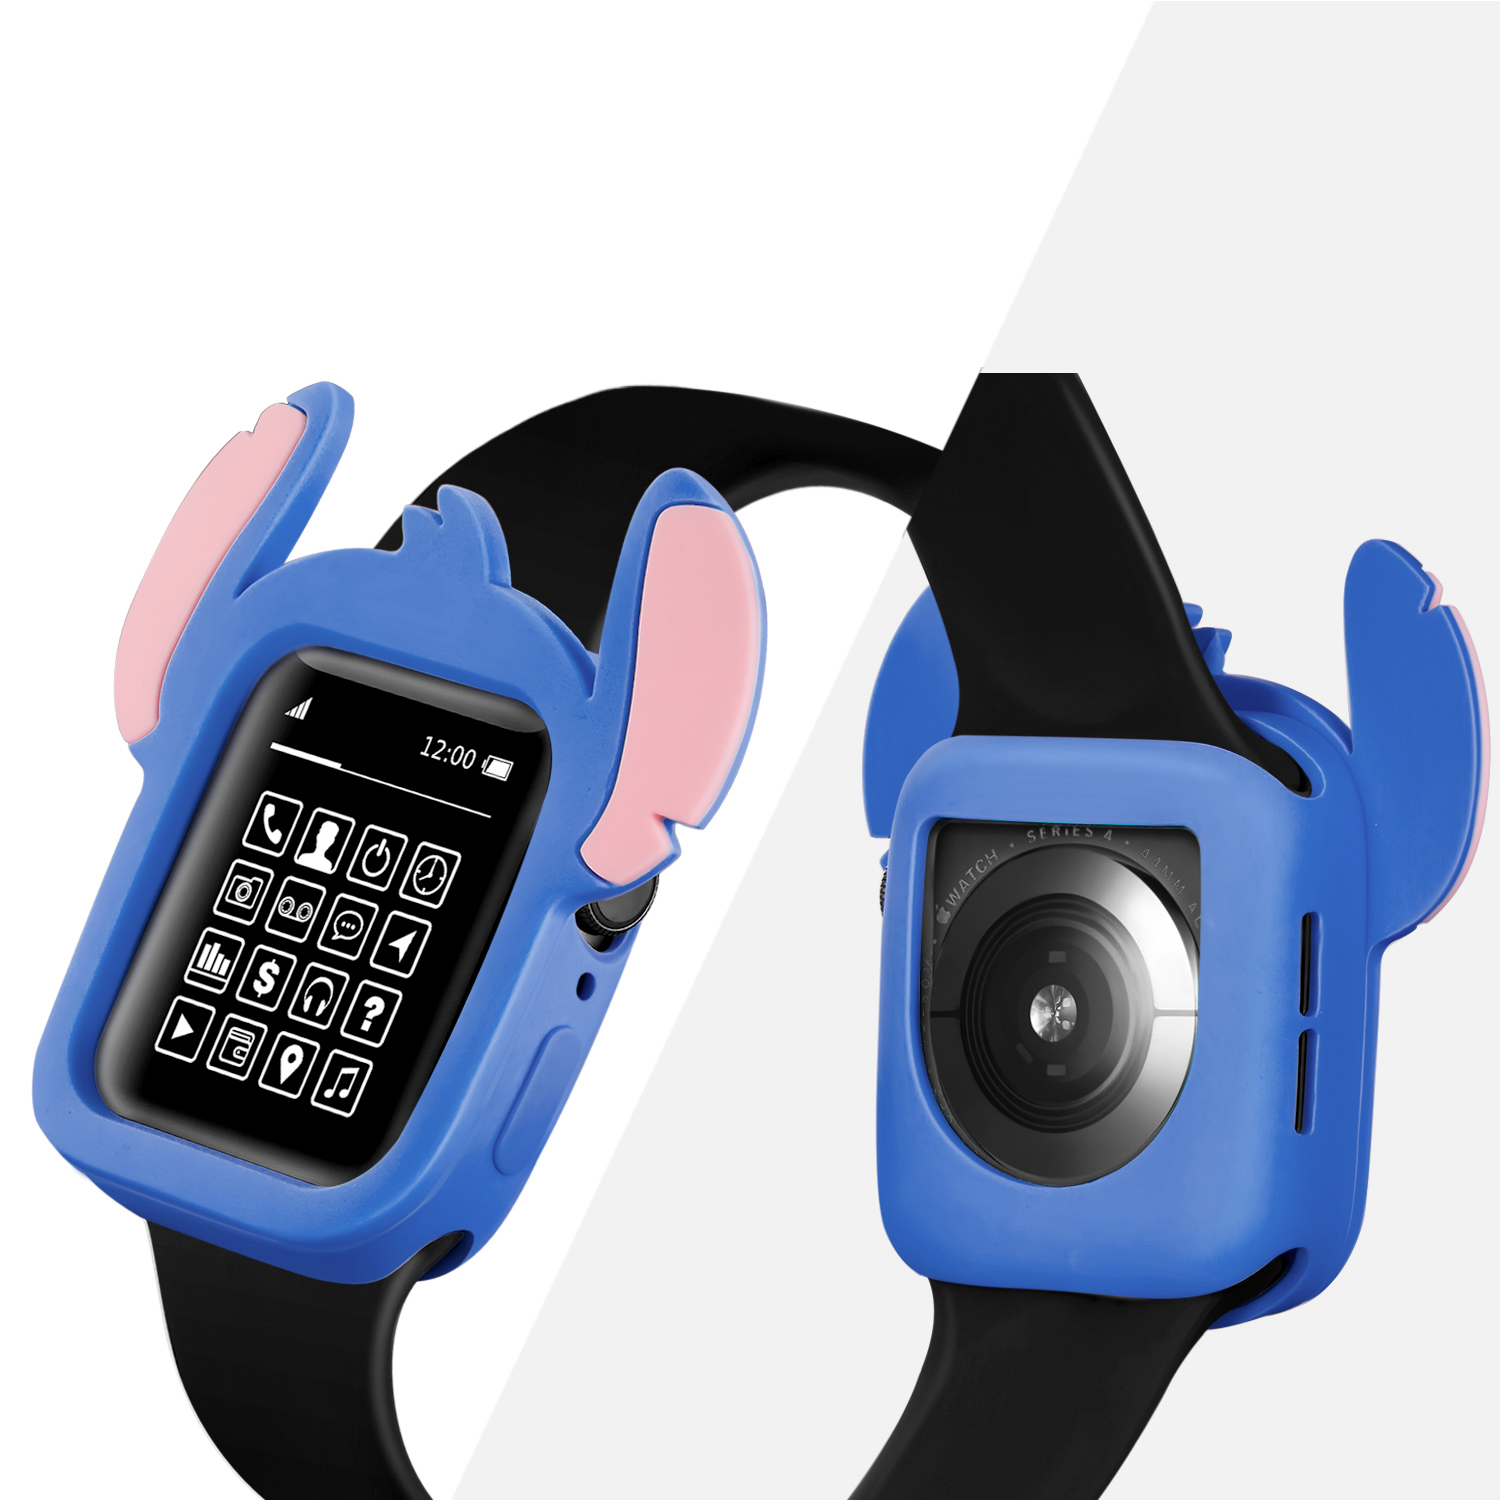 Serilabee Stitch Case for Apple Watch 16